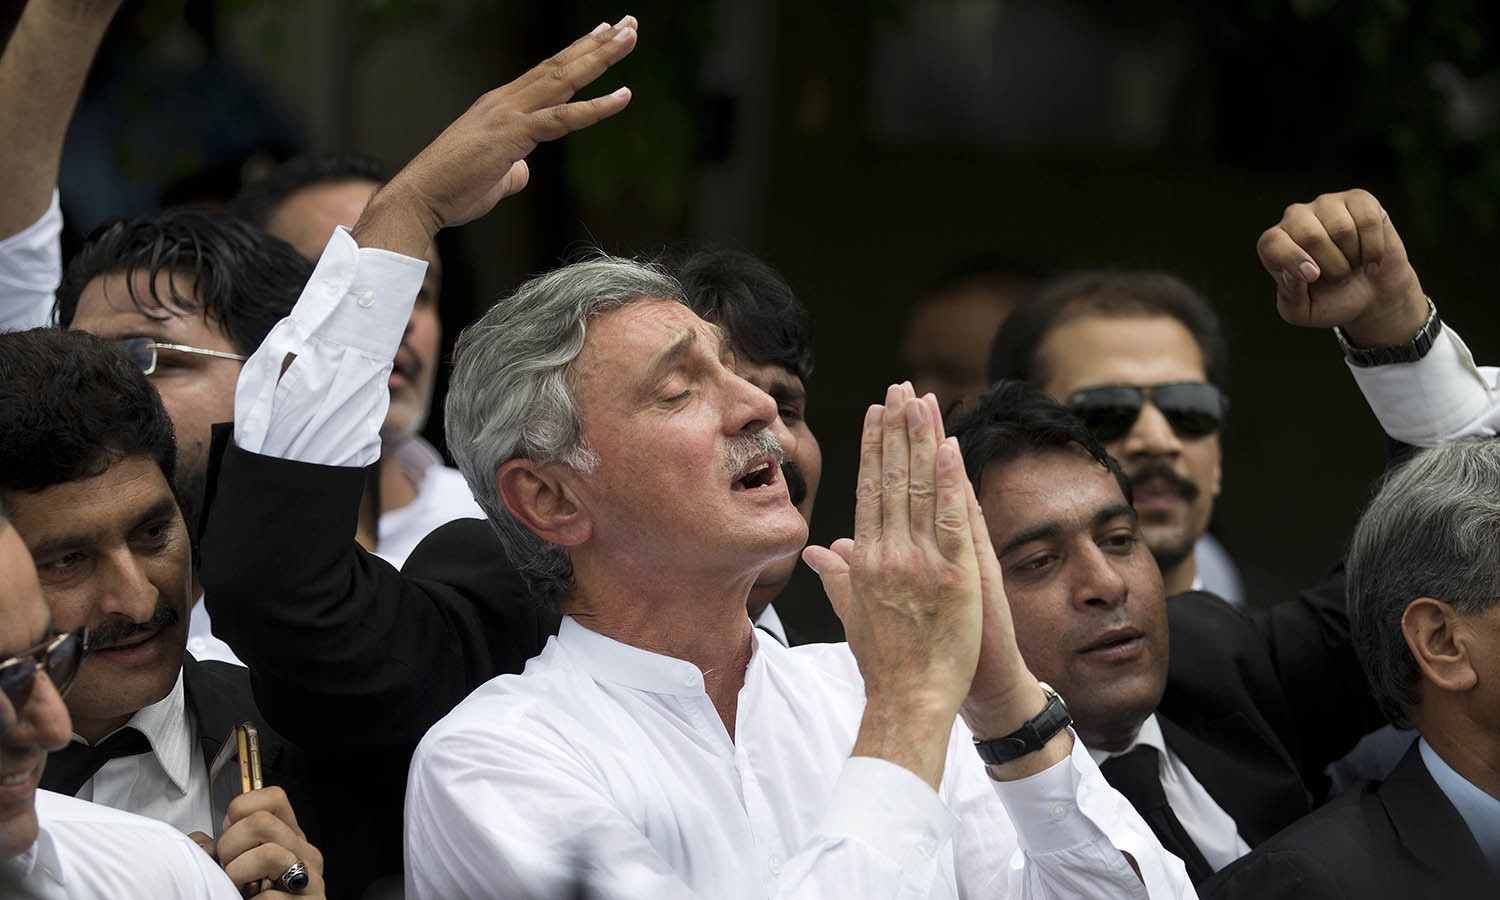 PTI leader Jehangir Tareen celebrates the dismissal of Prime Minister Nawaz Sharif. —AP